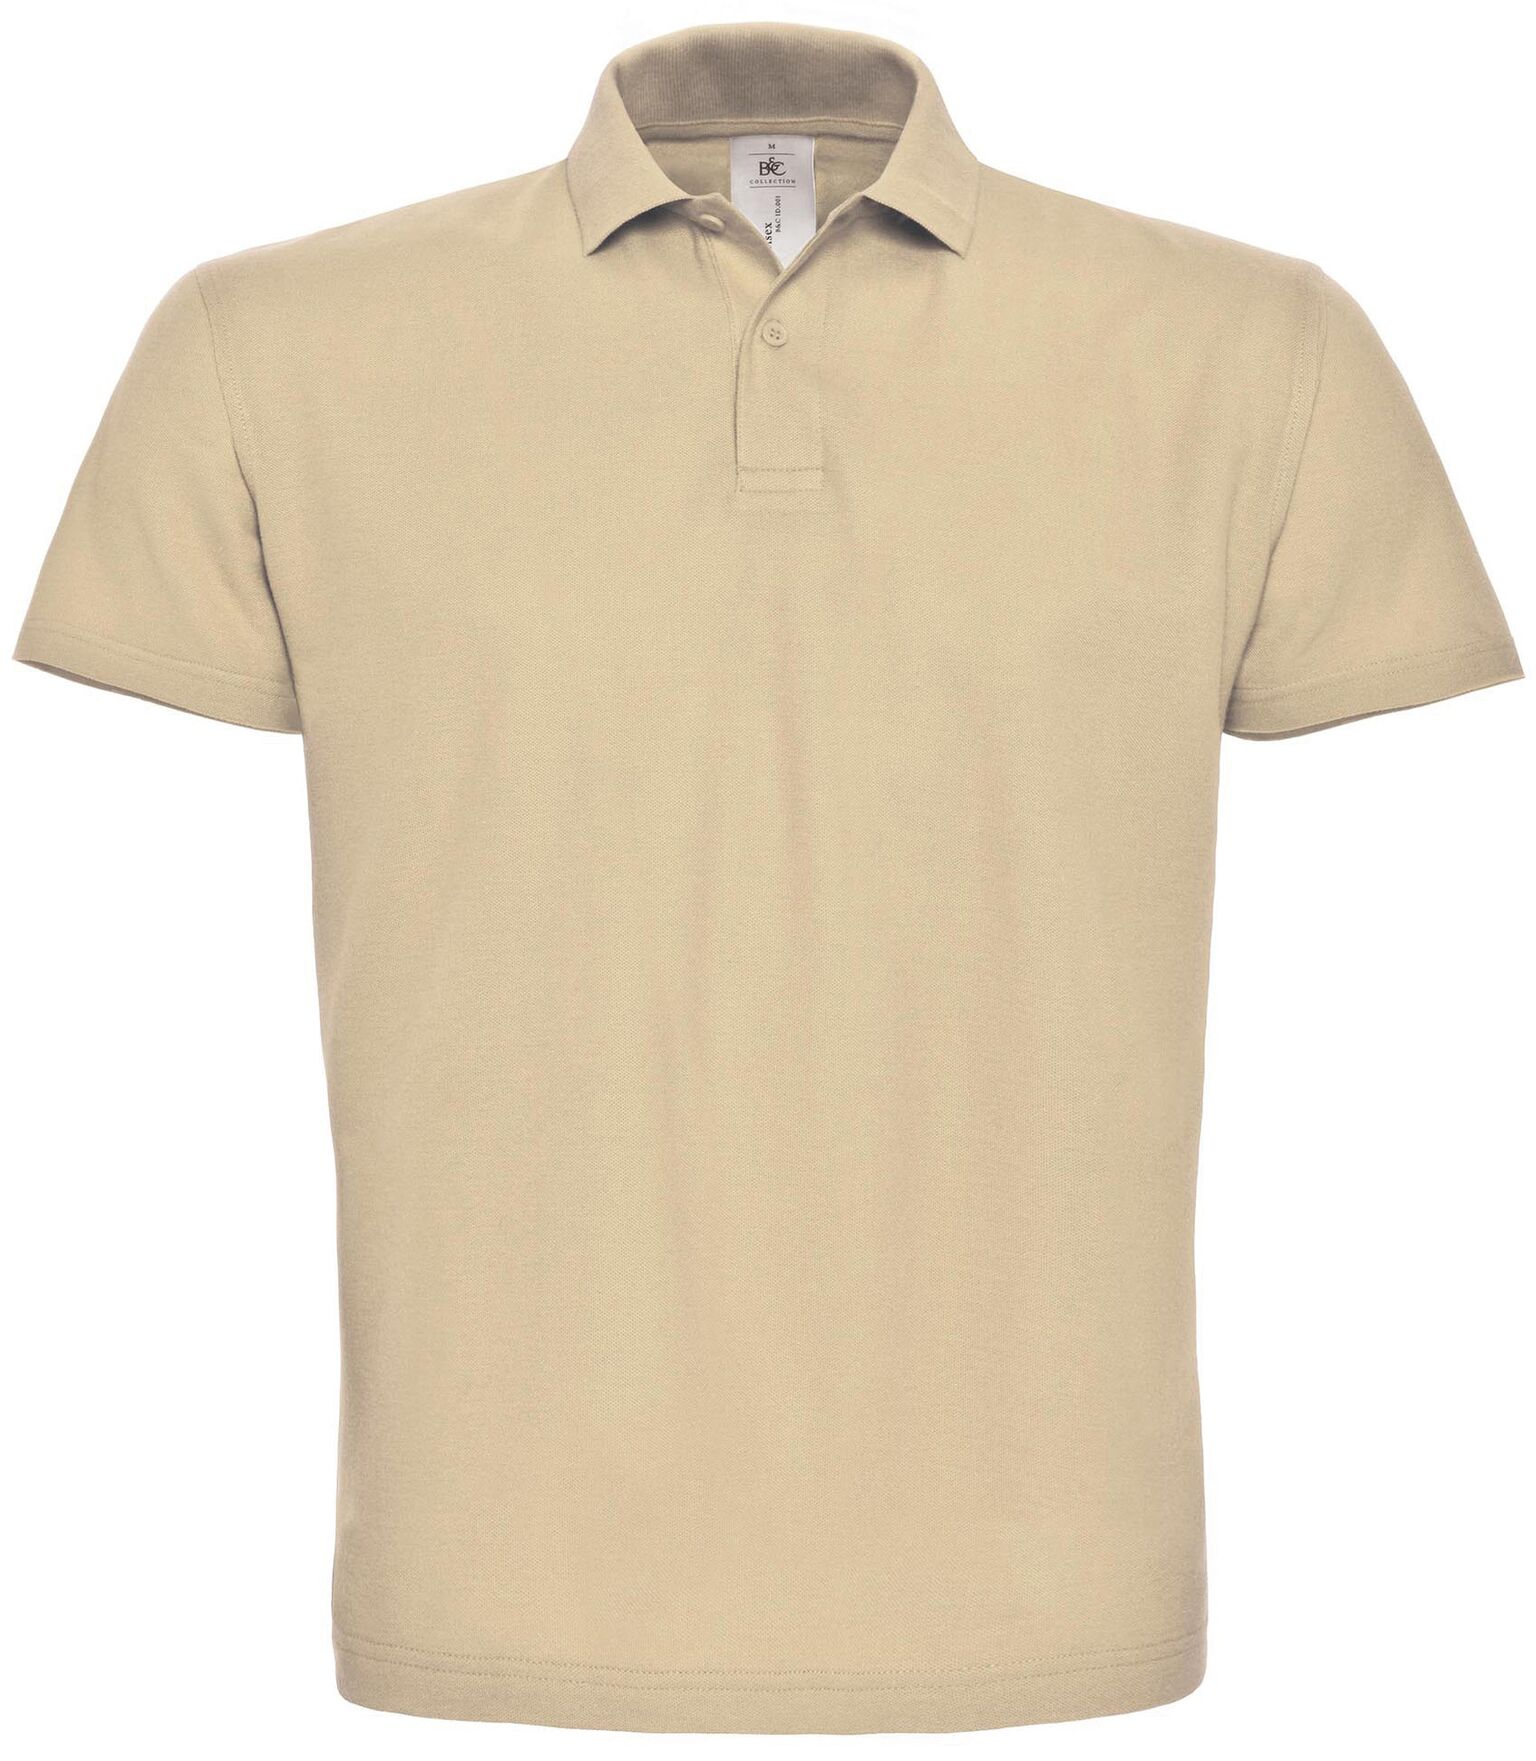 Mens B/&C Collection Casual Classic Everyday Pique Polo Shirt in 7 Colours XS-4XL